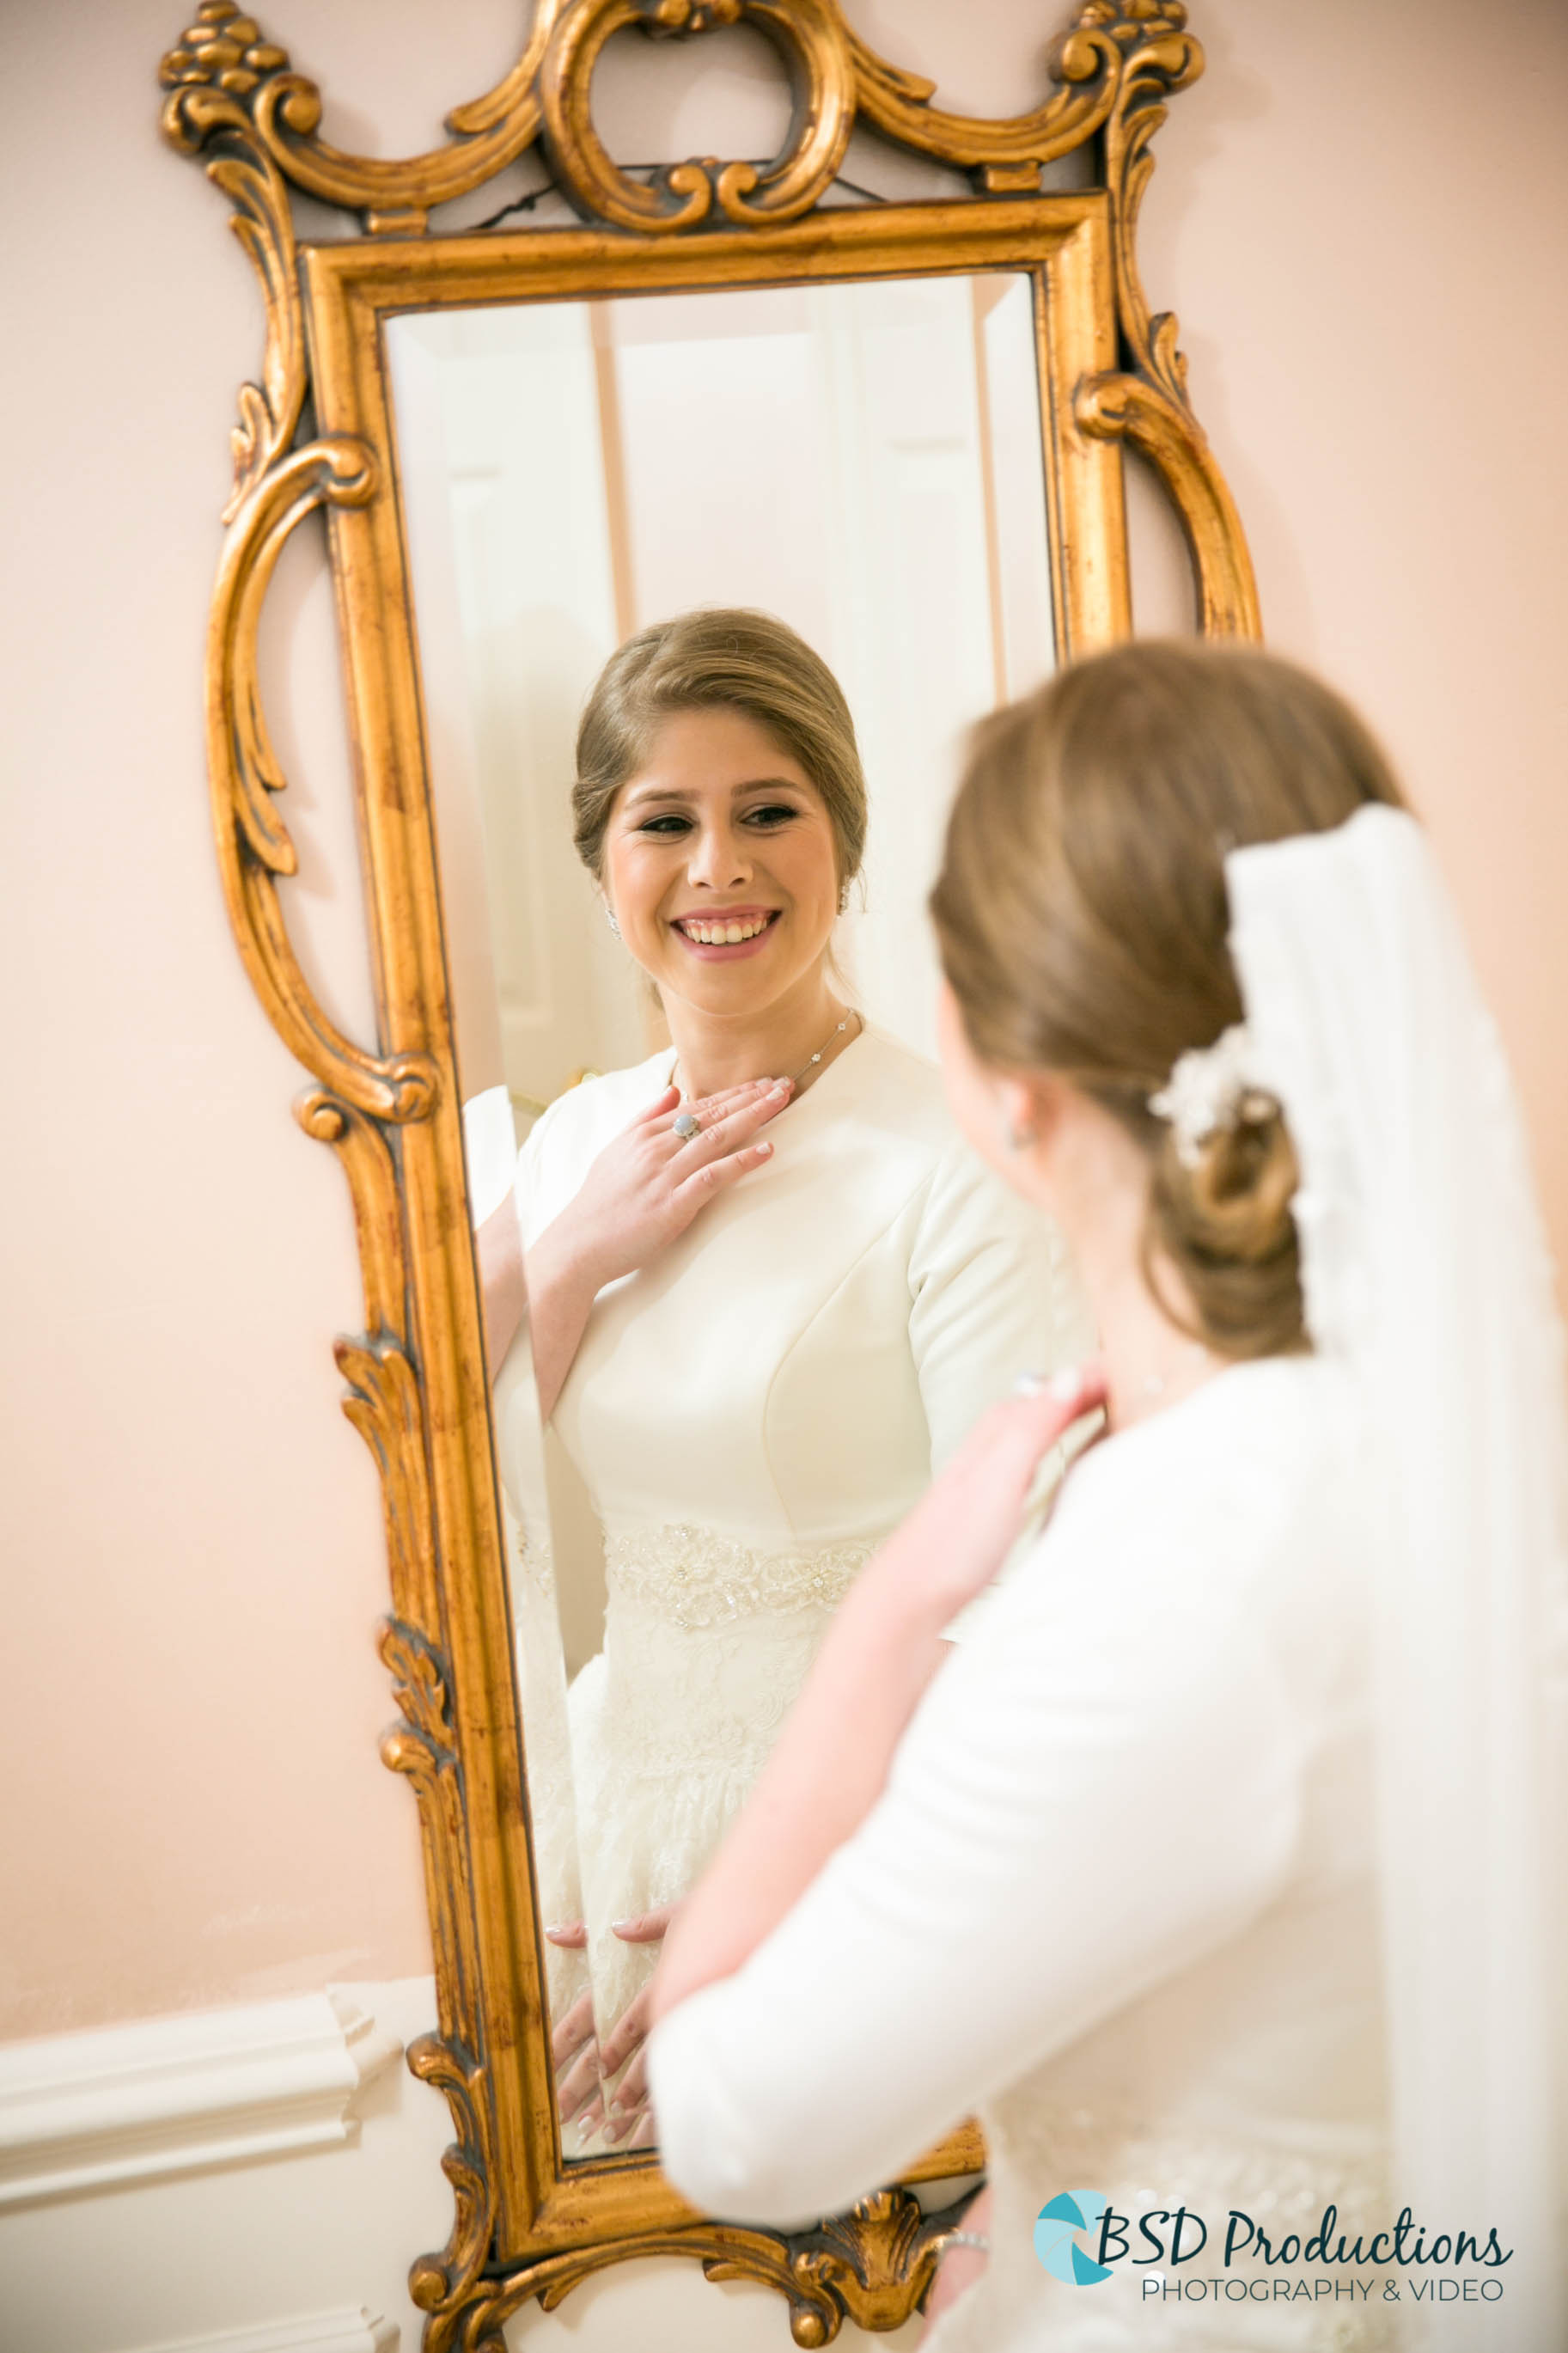 UH5A6468 Wedding – BSD Productions Photography